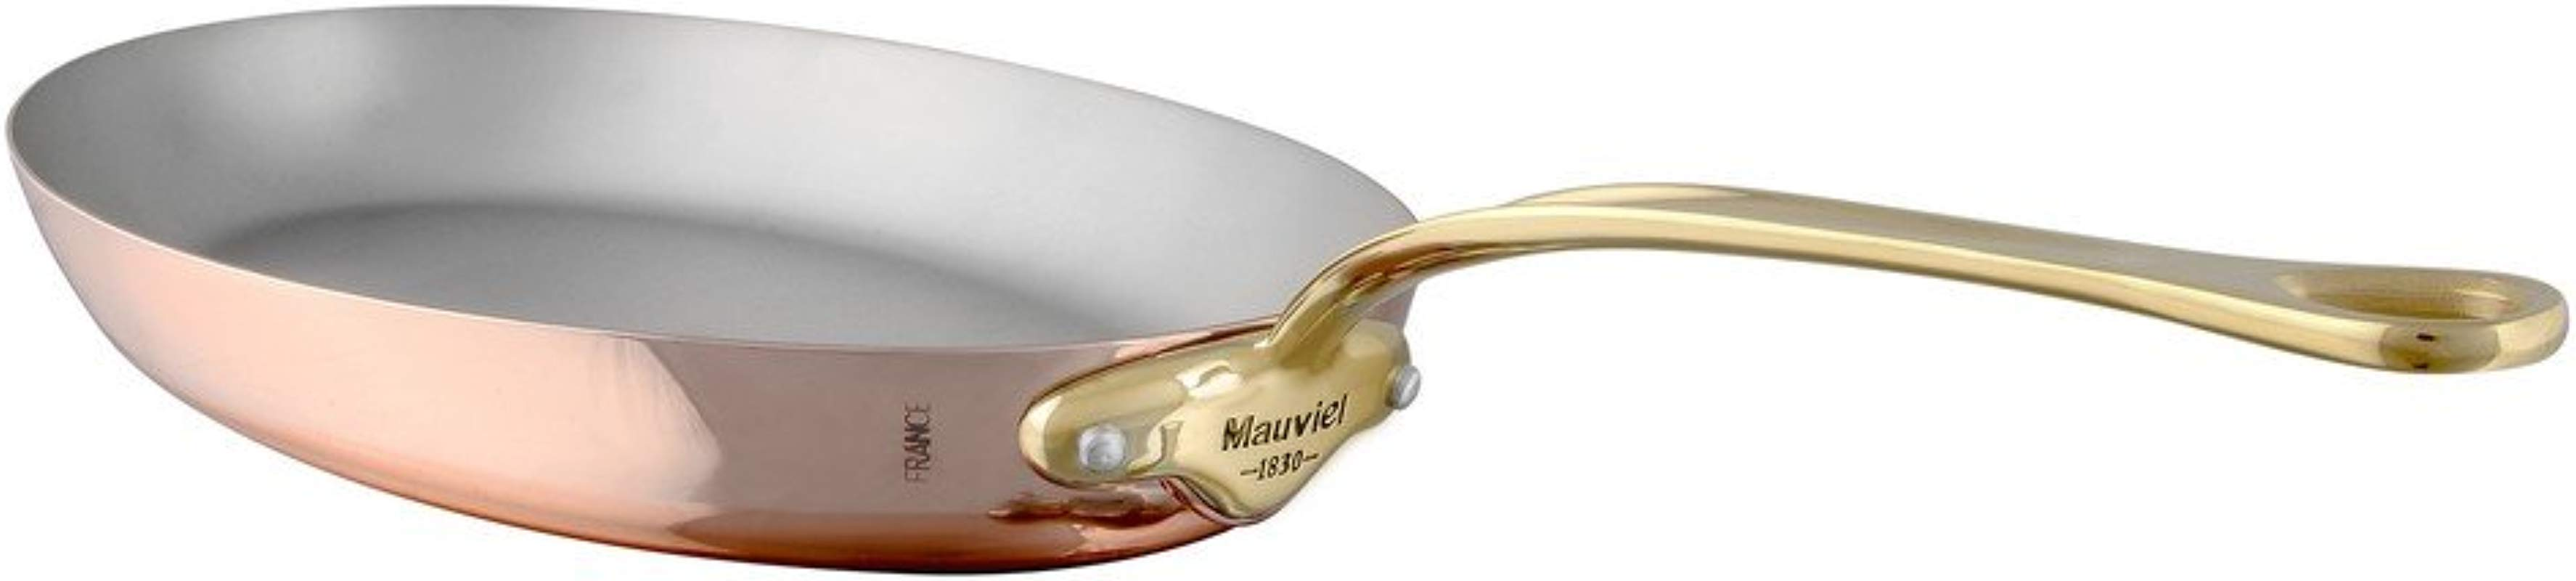 Mauviel 6725 30 M Heritage M 150B Copper Oval Frying Pan 11 8 Bronze Handle